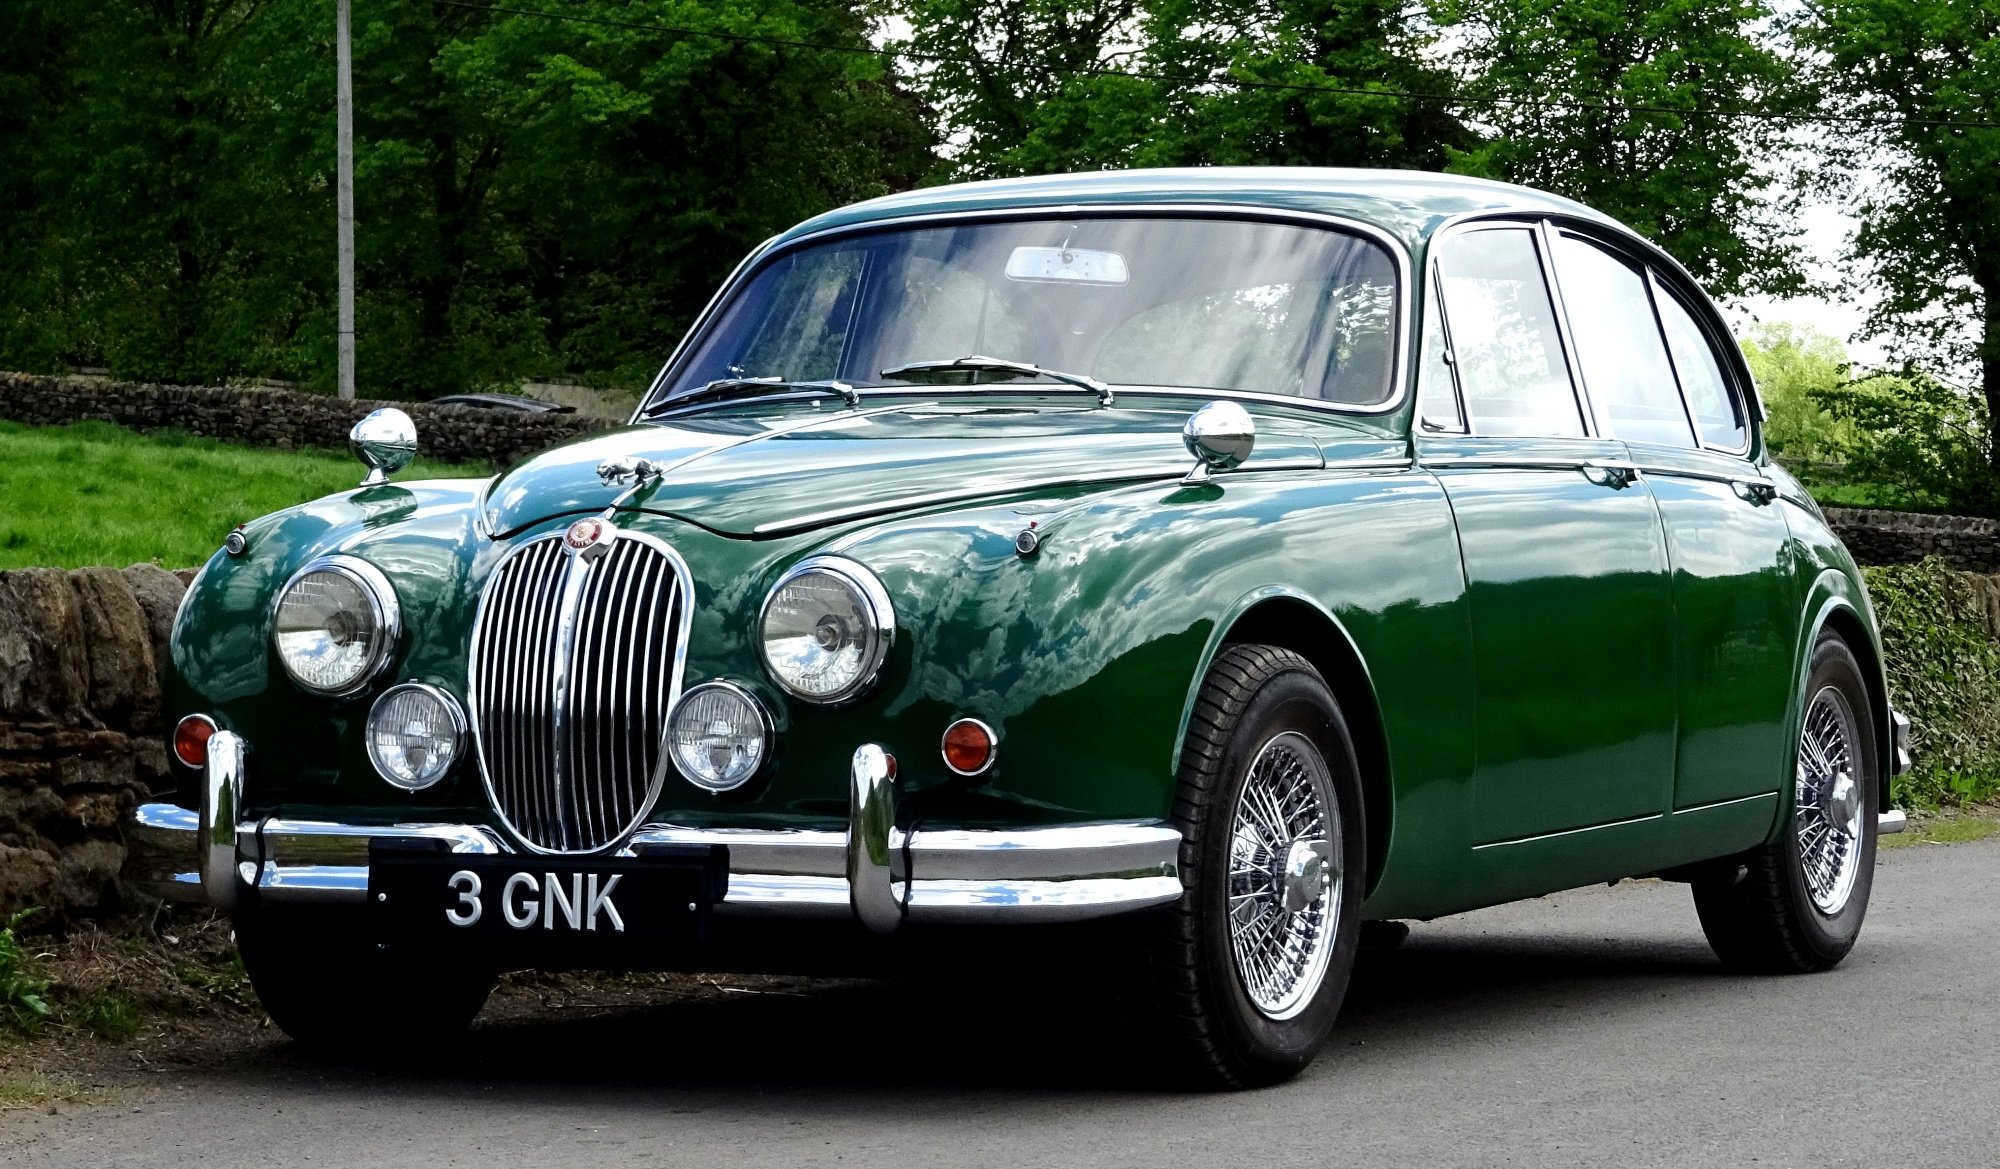 1961 STUNNING JAGUAR MK2 3.8 BRITISH CLASSIC CAR For Sale (picture 1 of 6)